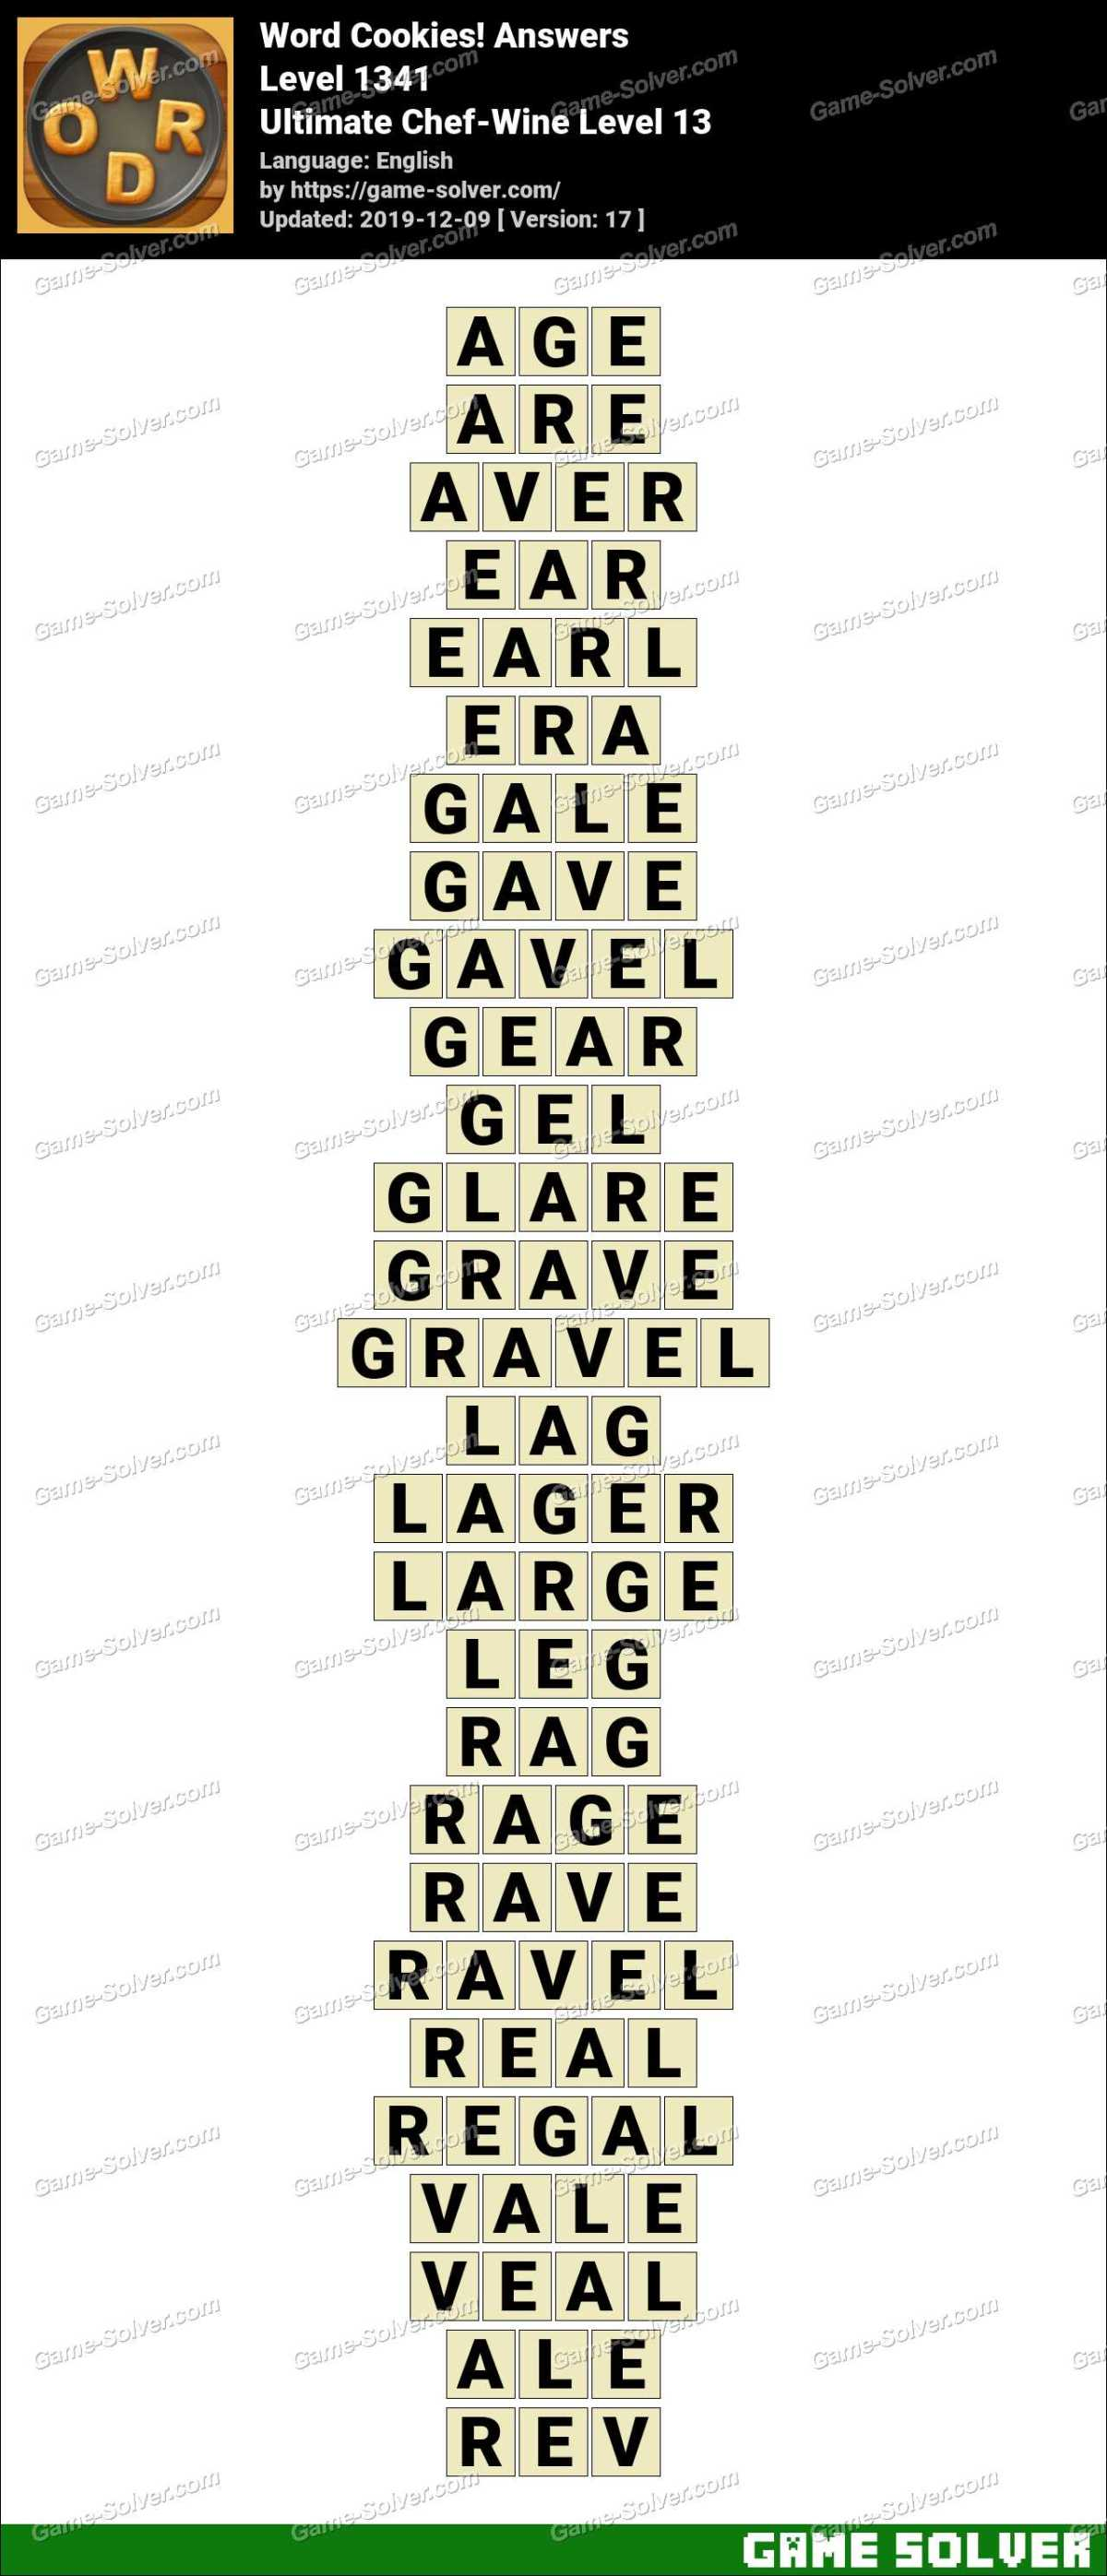 Word Cookies Ultimate Chef-Wine Level 13 Answers